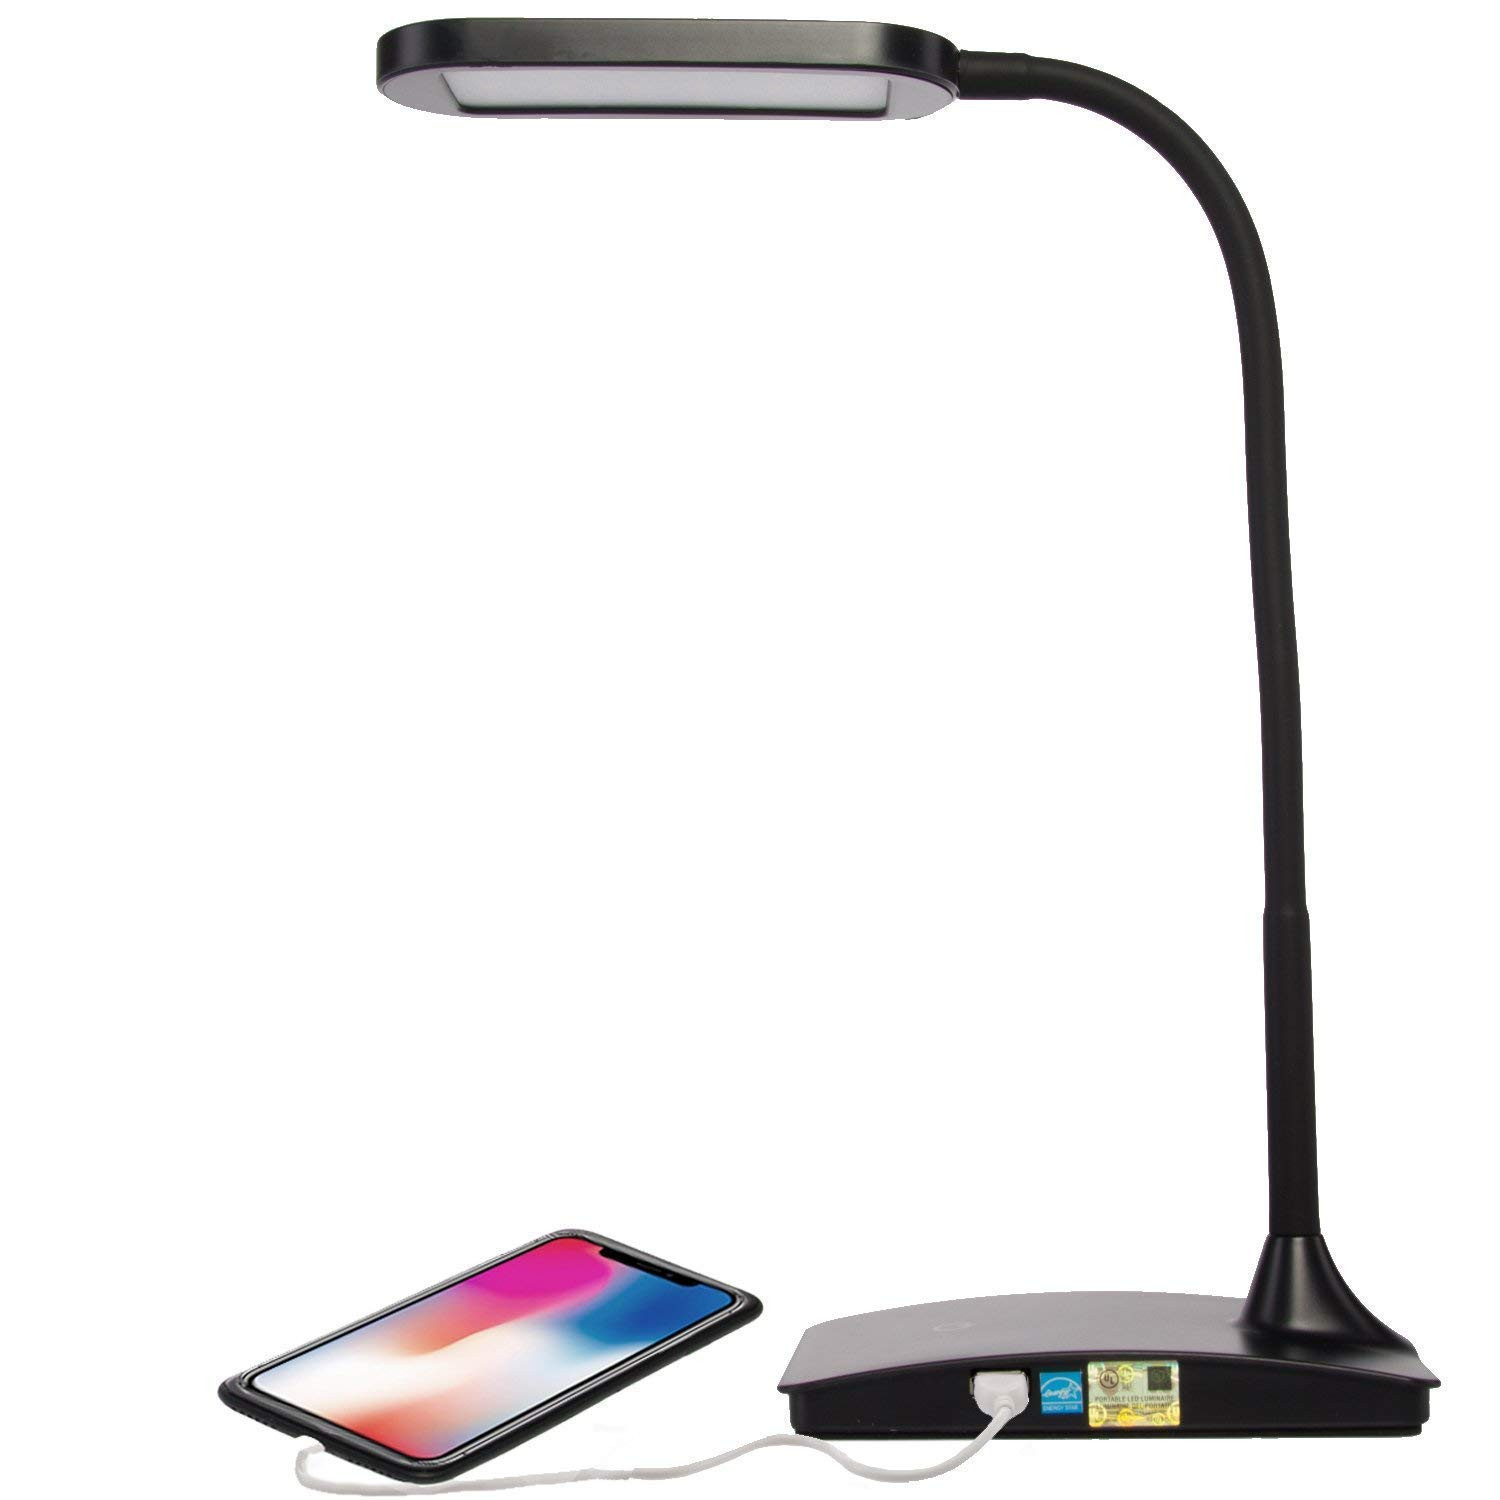 Best ideas about Ivy Led Usb Desk Lamp . Save or Pin TW Lighting IVY 40BK The IVY LED Desk Lamp with USB Port Now.